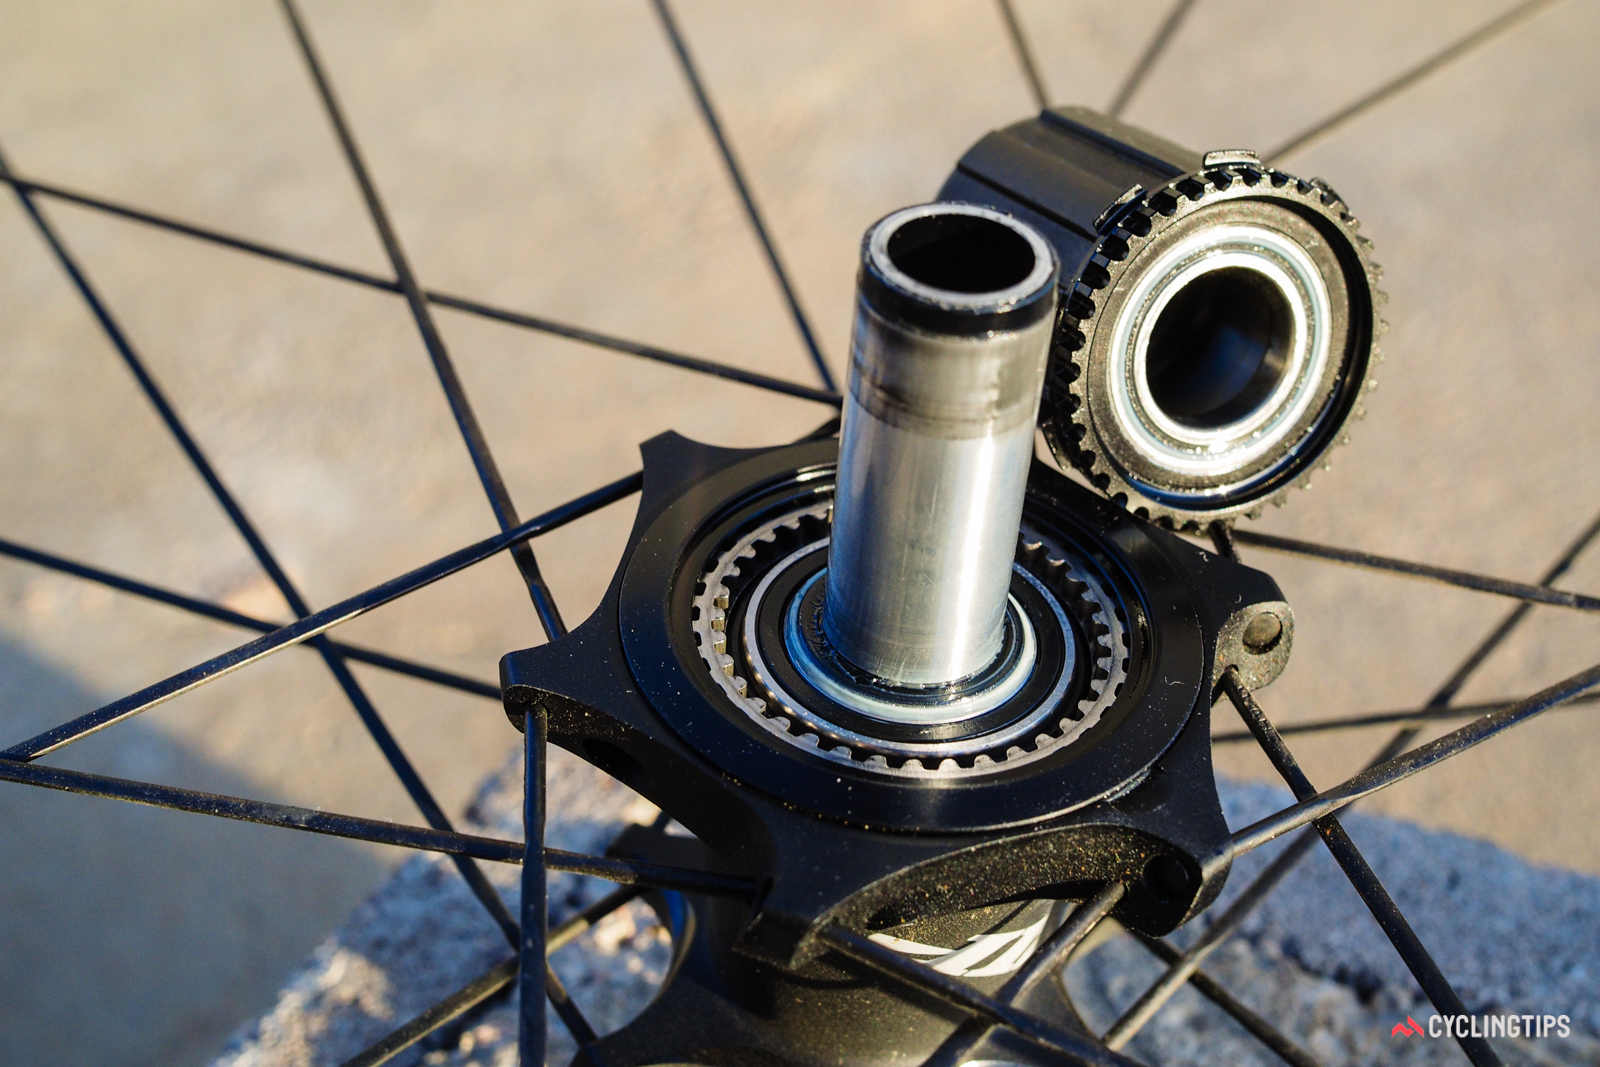 The Cognition rear hub's Axial Clutch driver mechanism looks unusual, but in essence is very similar to DT Swiss's long-running Star Ratchet design, only with magnets in lieu of conventional steel springs. Freehubs are interchangeable between SRAM/Shimano 11spd, Campagnolo 11spd, and SRAM XD standards.